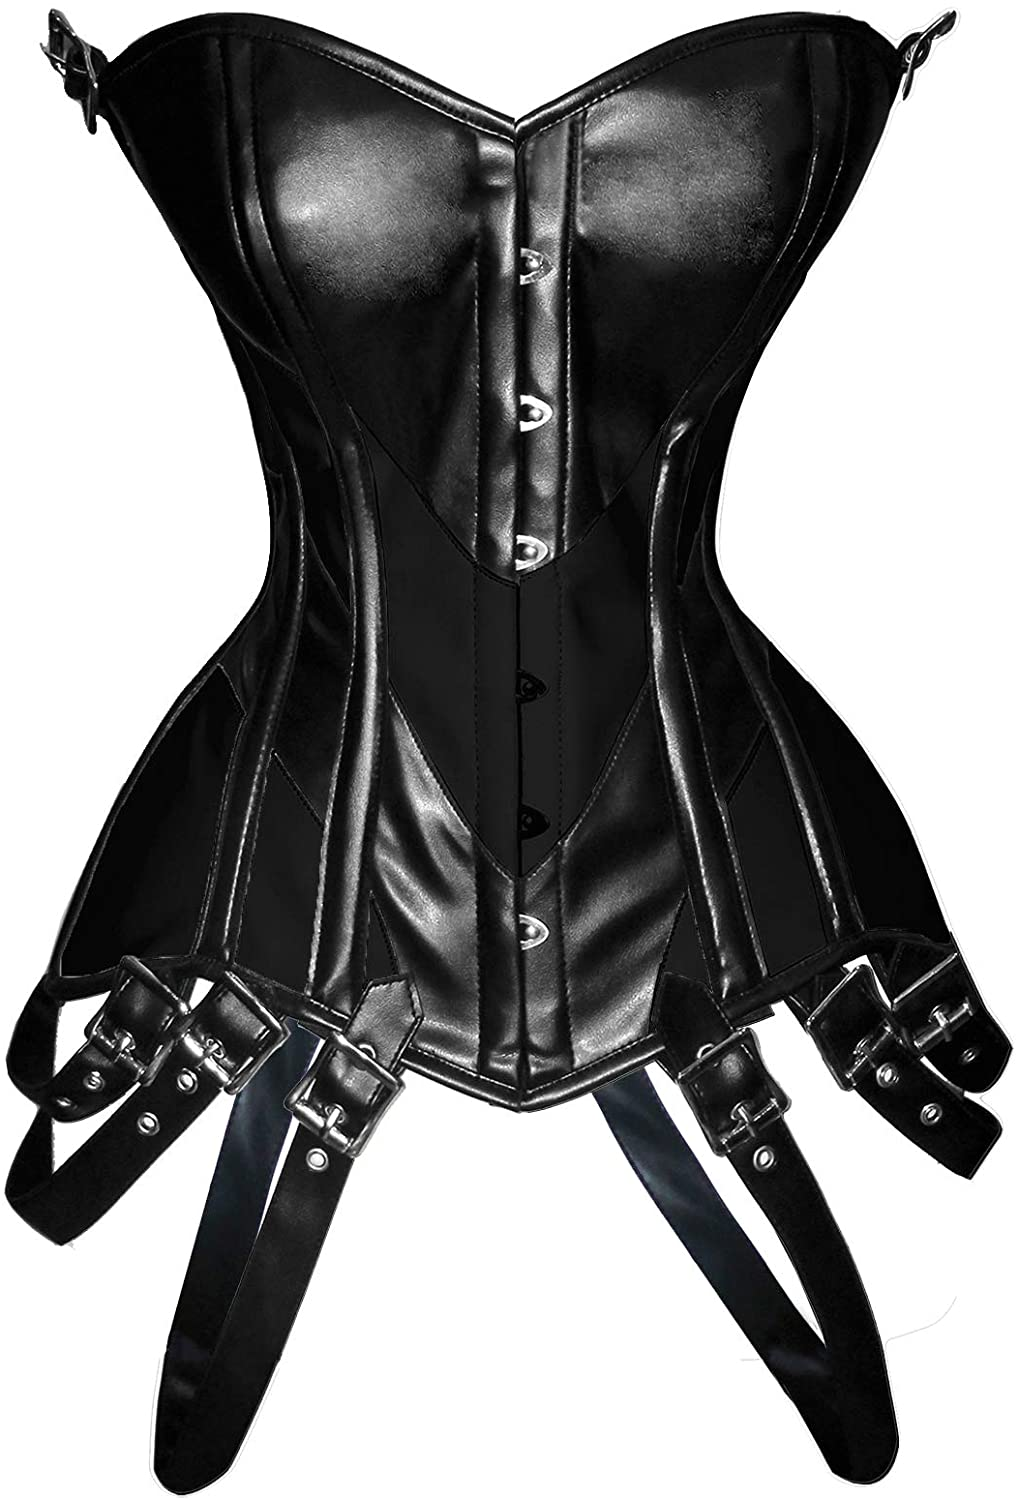 luvsecretlingerie Heavy Duty 26 Double Steel Boned Waist Training Faux Leather Overbust Tight Shaper Corset